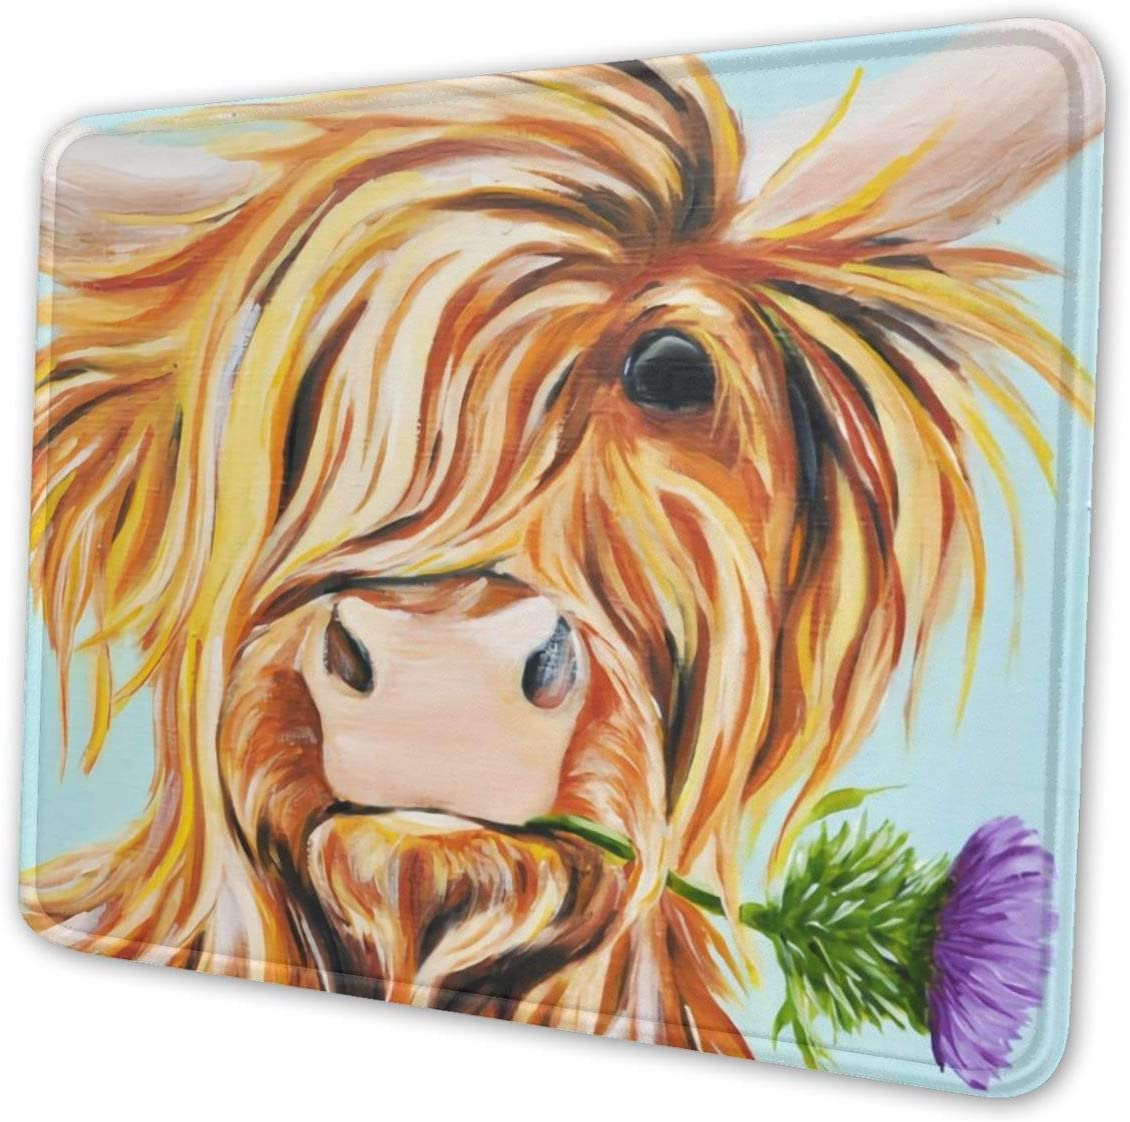 Scotland Cow Old Idea Theme Art Mouse Pad Natural Rubber Mouse Pad W//Printing of Border 10x12 Inches